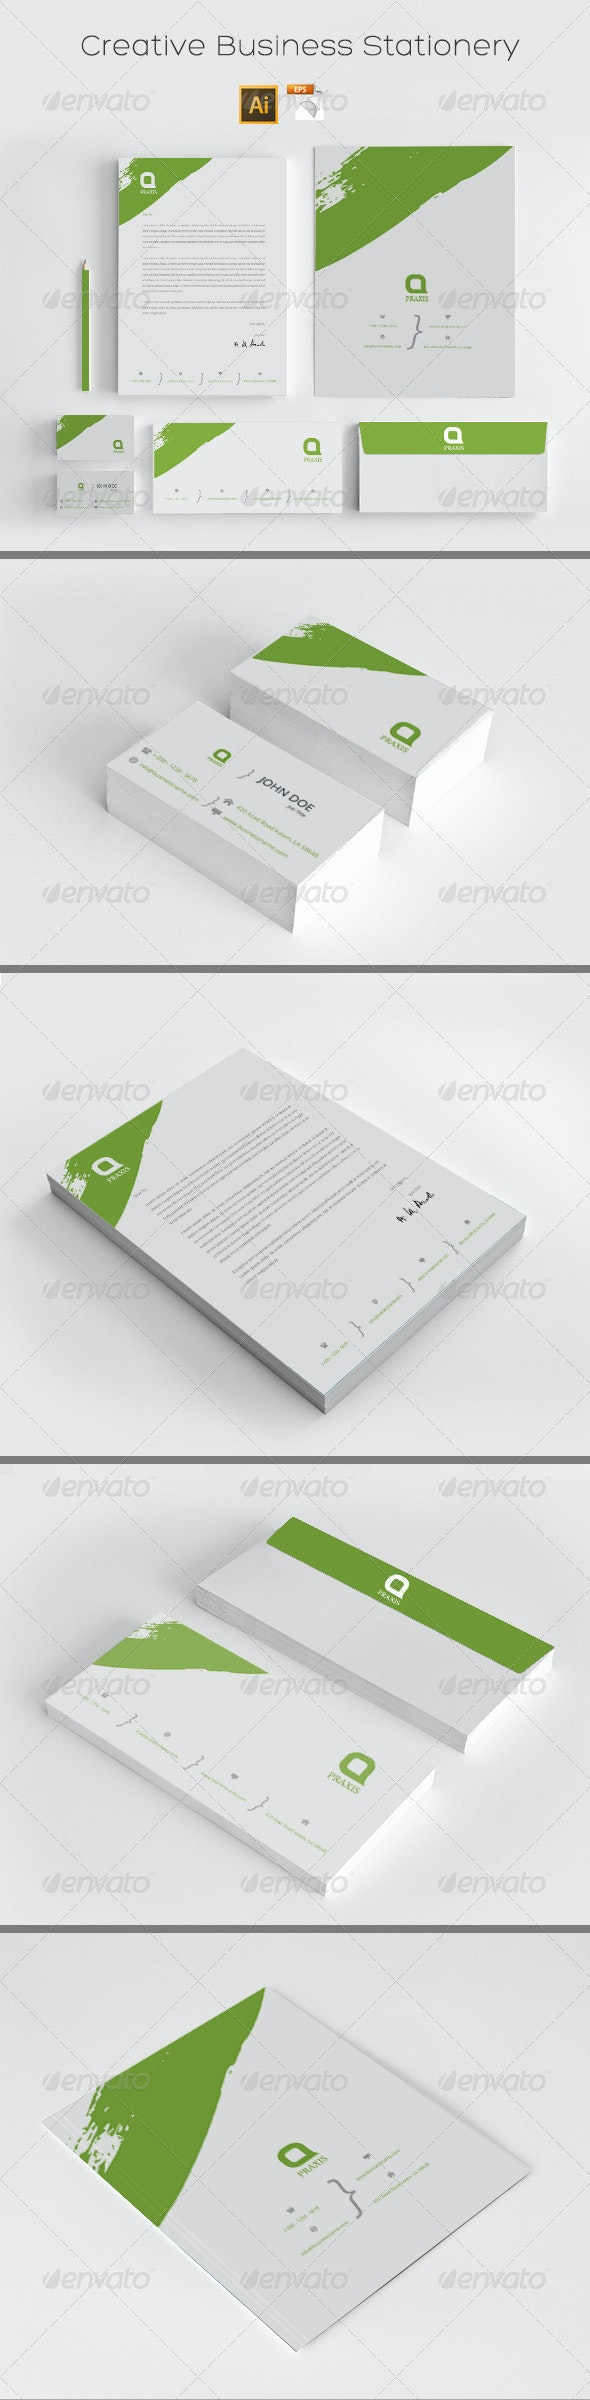 Creative Business Stationery - Stationery Print Templates